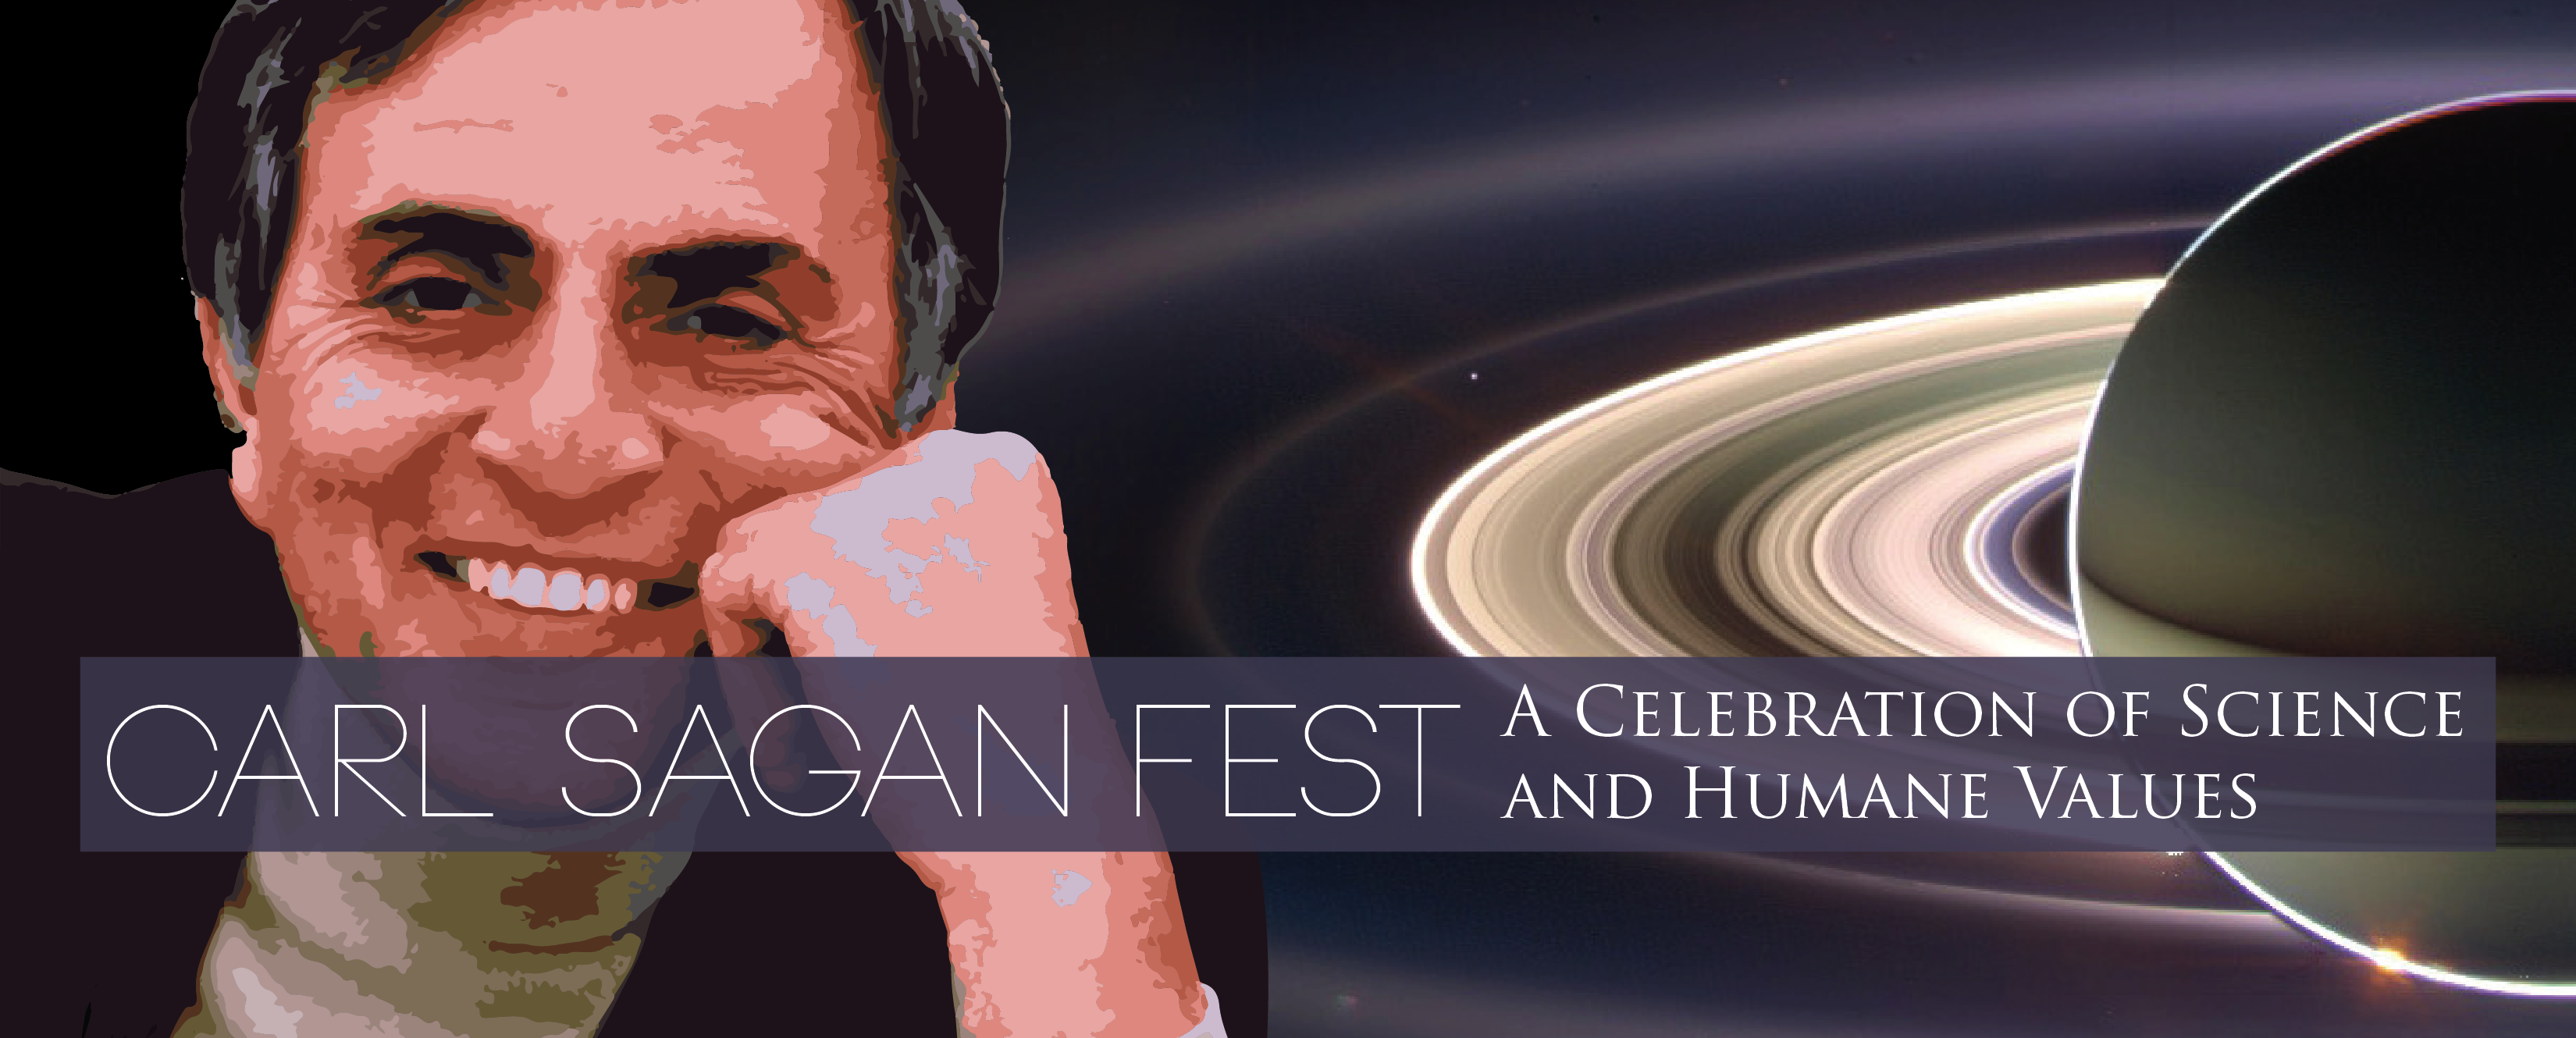 Carl Sagan Fest – Carl Sagan and The Way of Science Banner